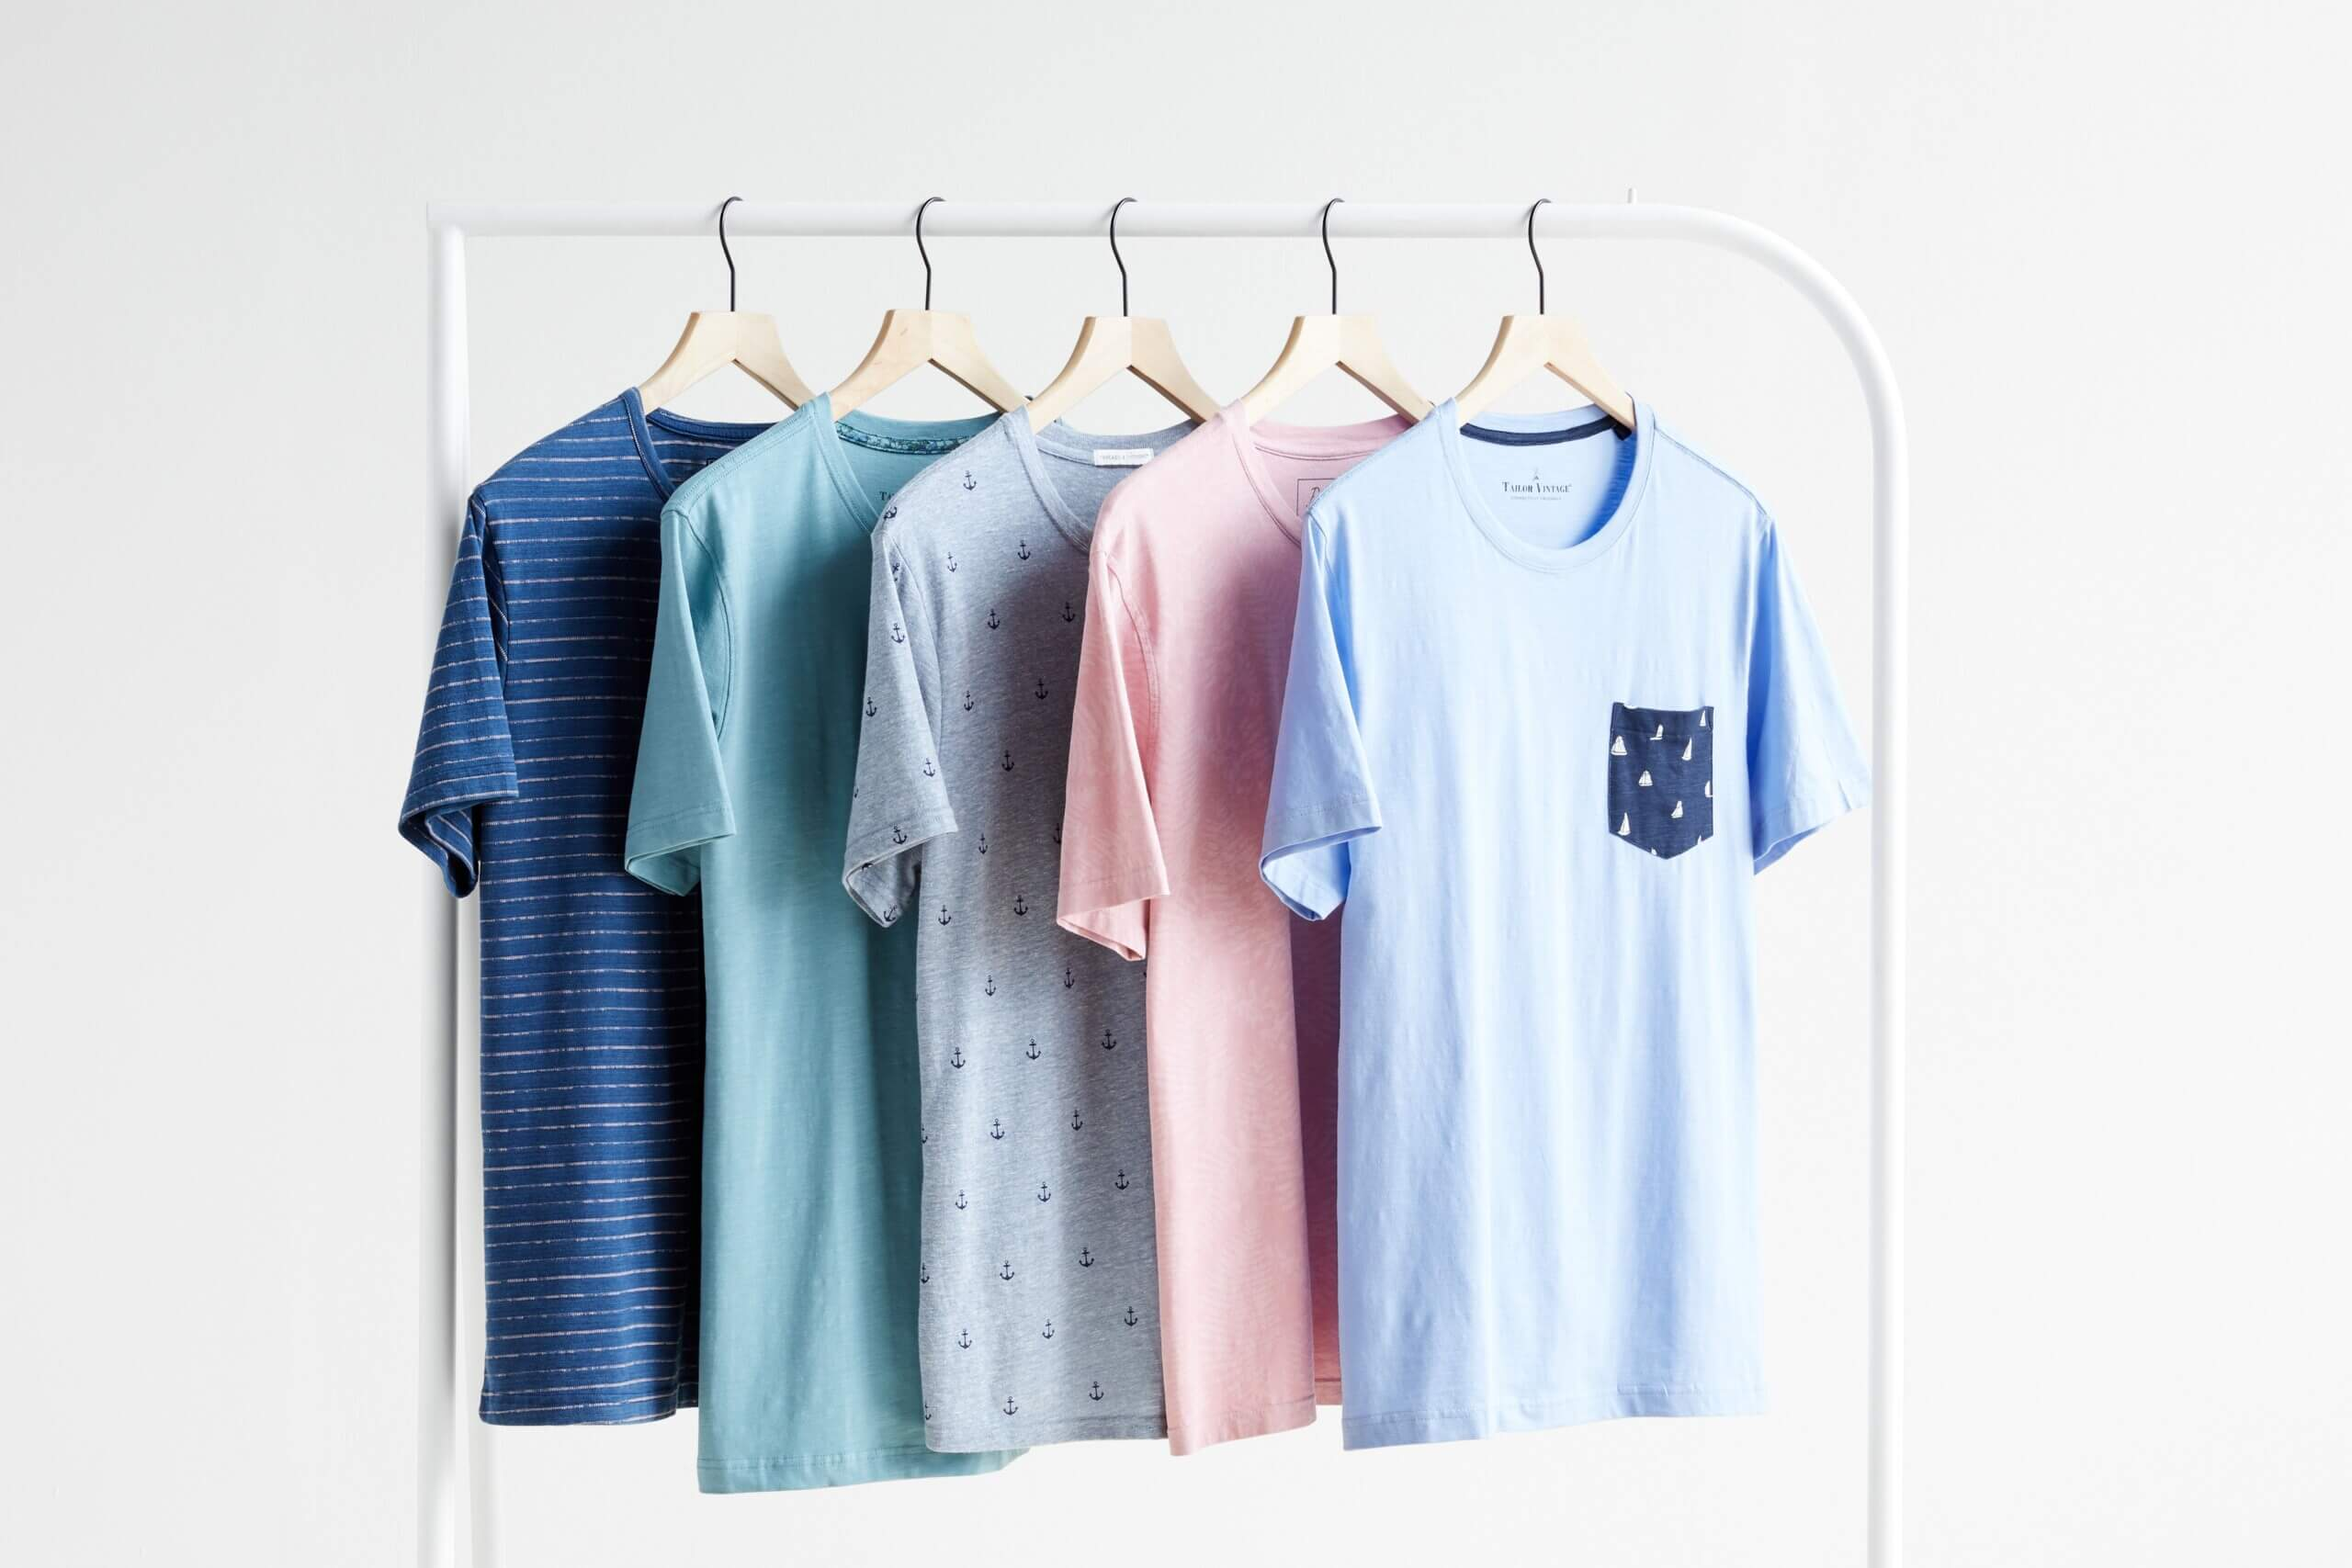 Stitch Fix Men's clothing rack of blue and salmon colored t-shirts